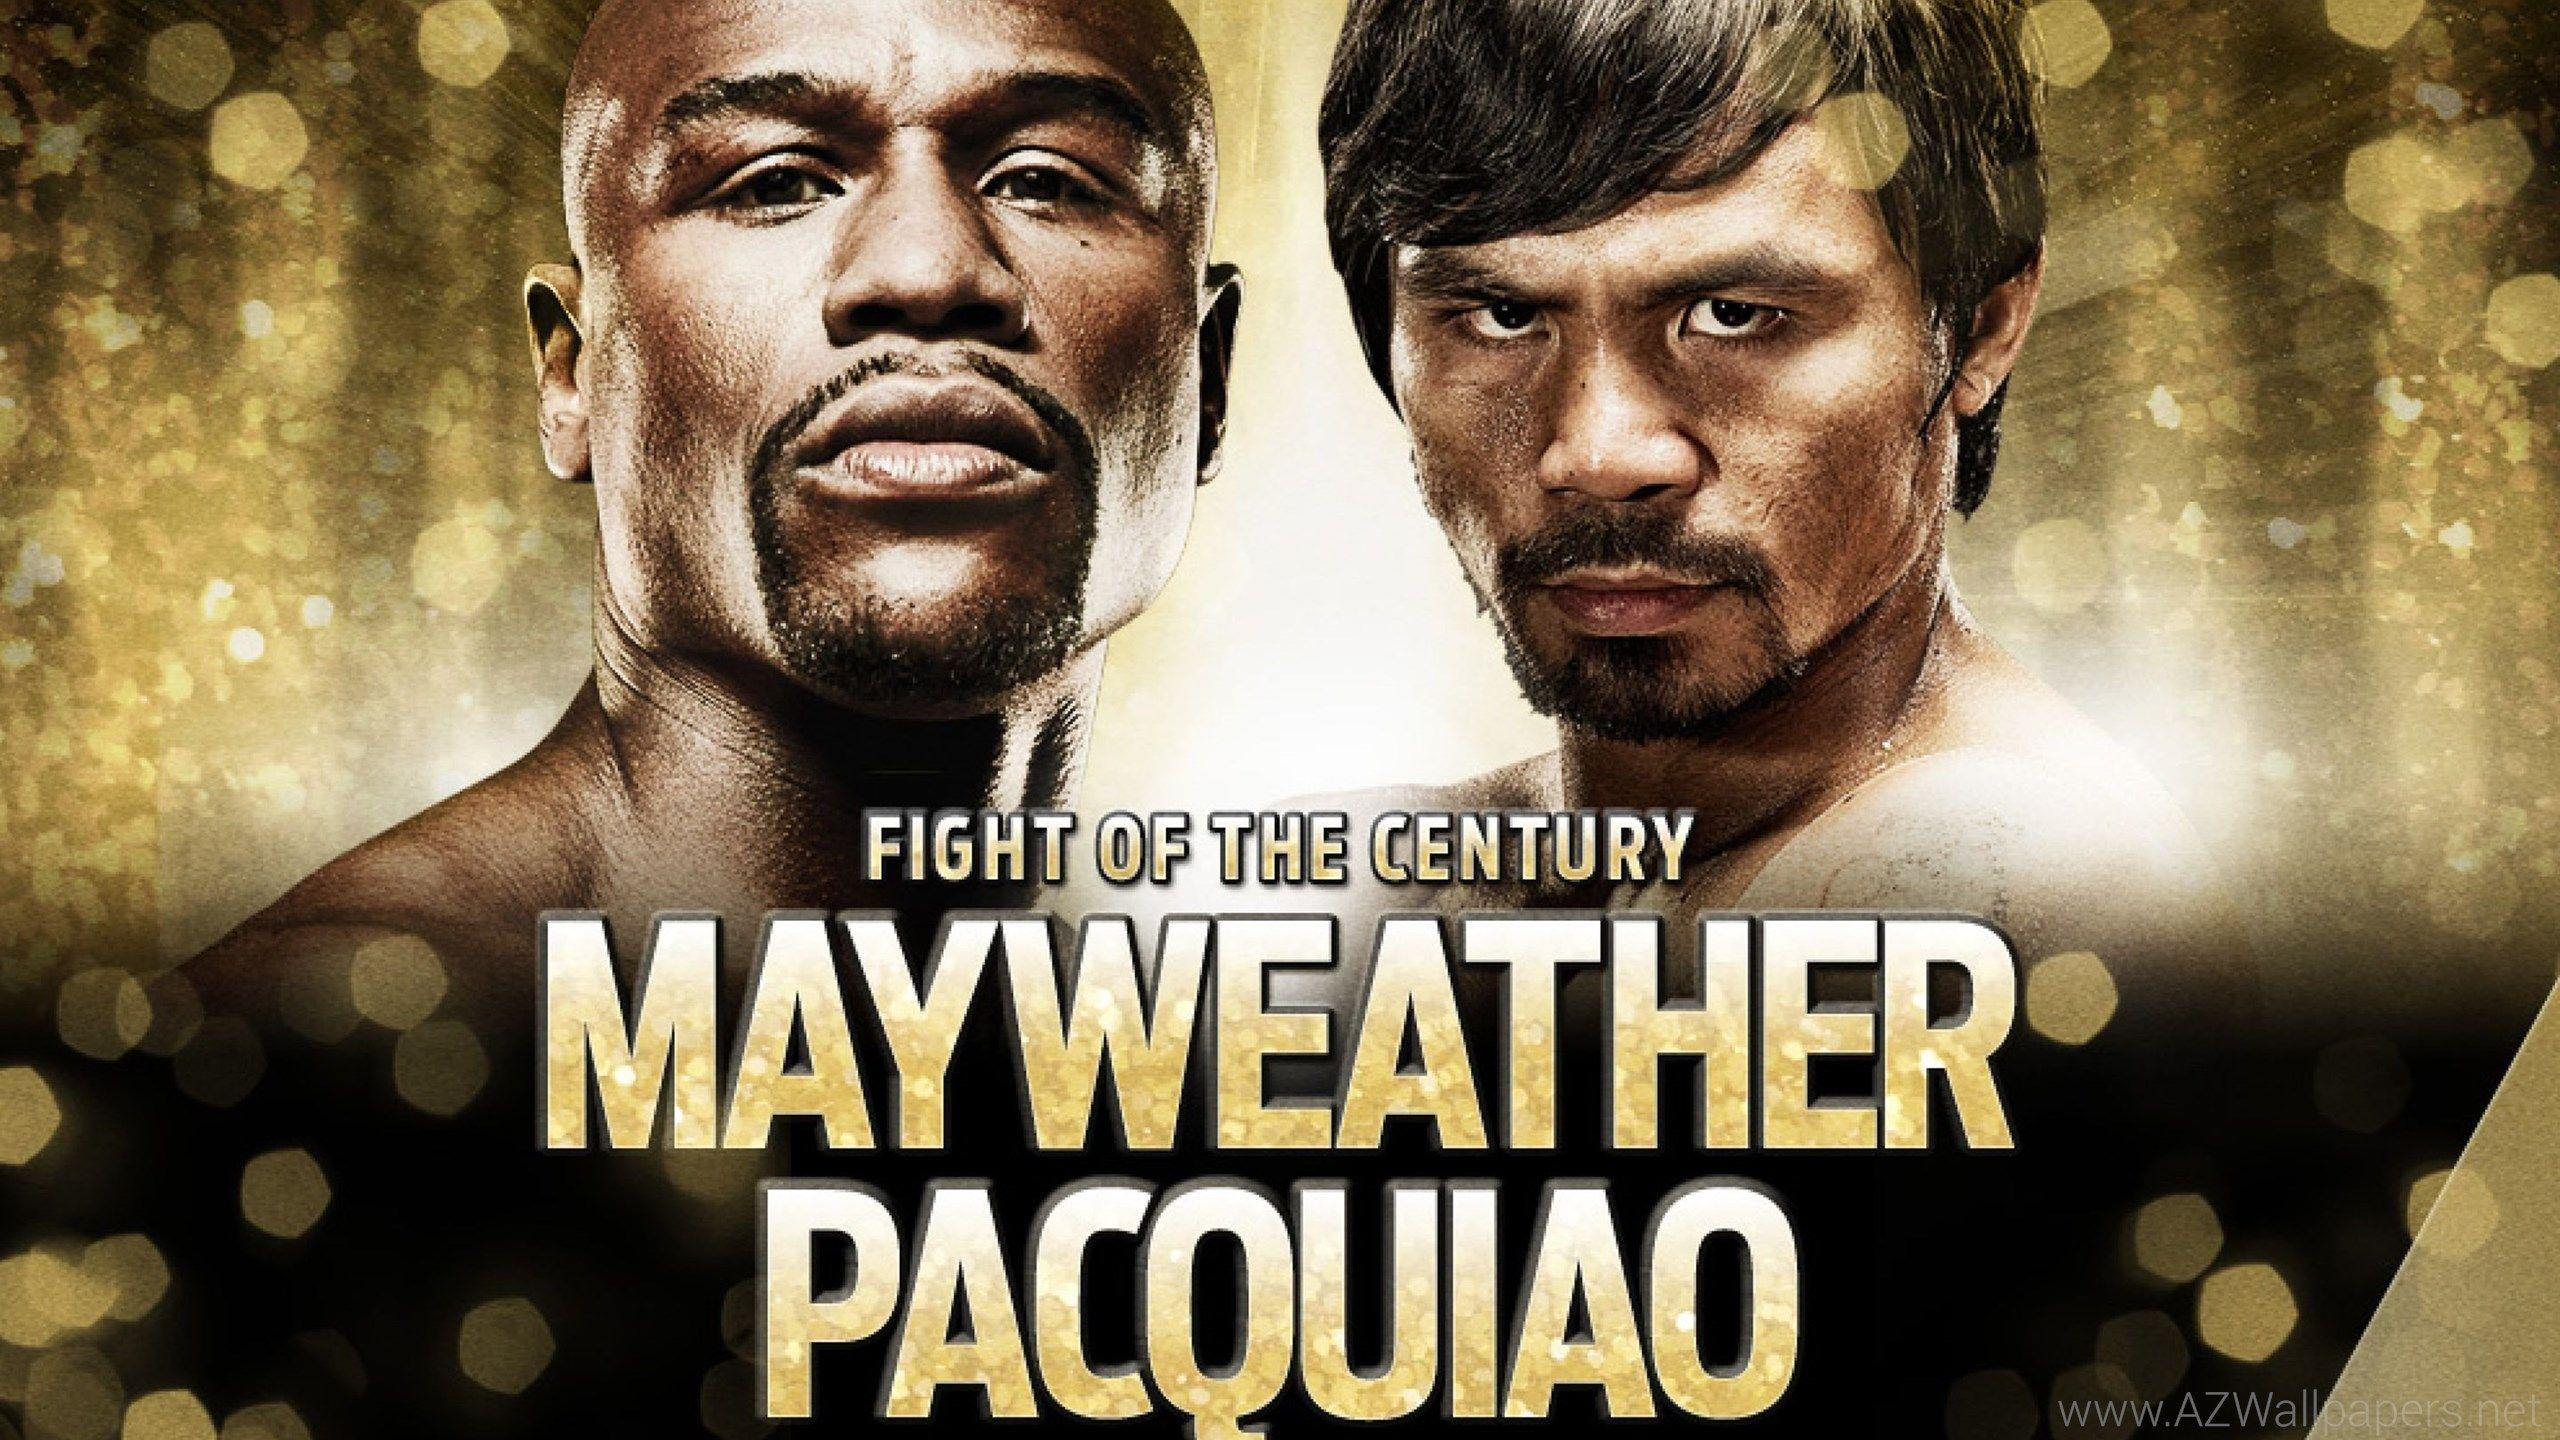 Manny Pacquiao vs Floyd Mayweather 2015 Fight of the Century